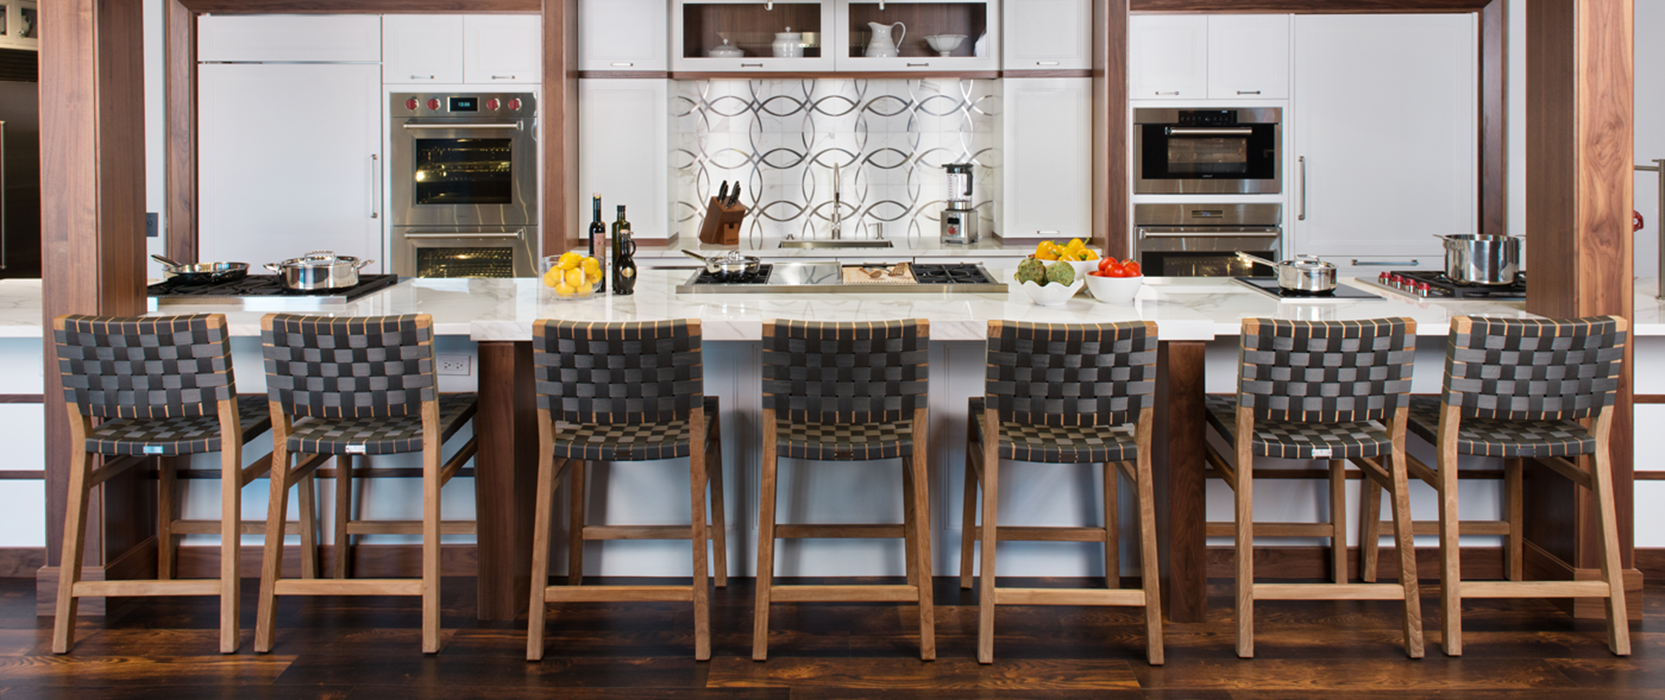 Clarke showroom kitchen with long island set up with seven stools